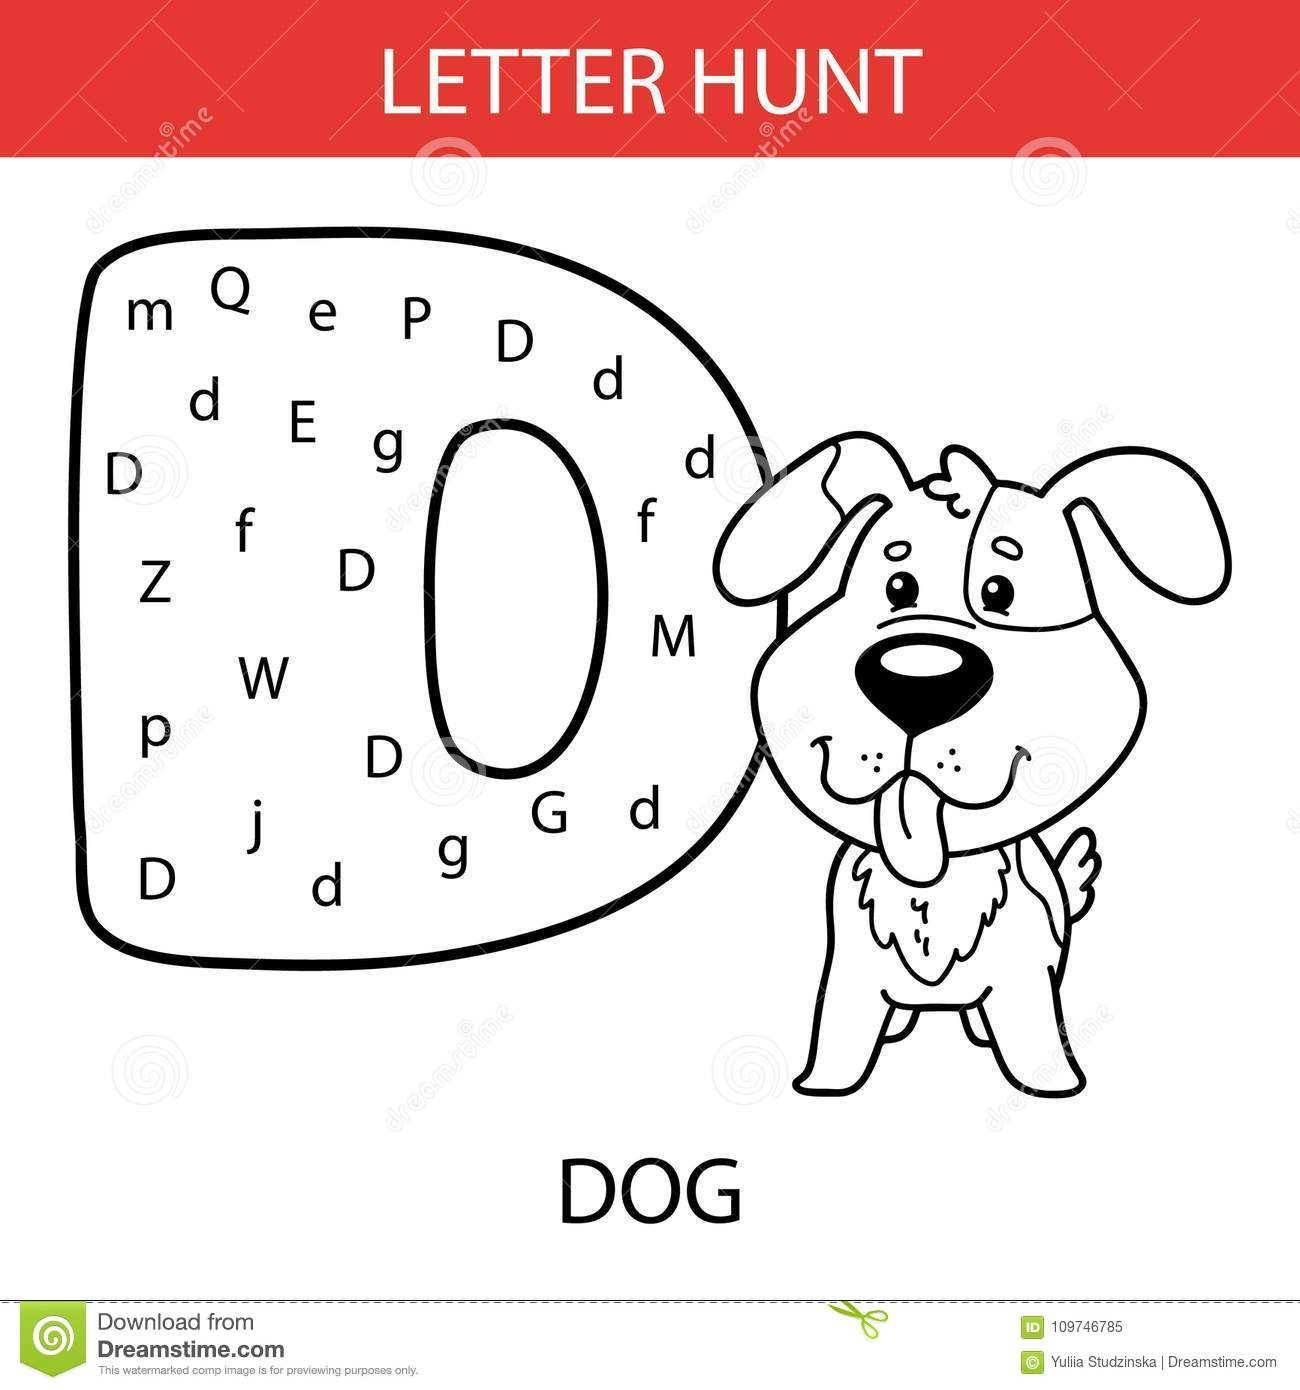 Animal Letter Hunt Puppy Stock Vector Illustration Of